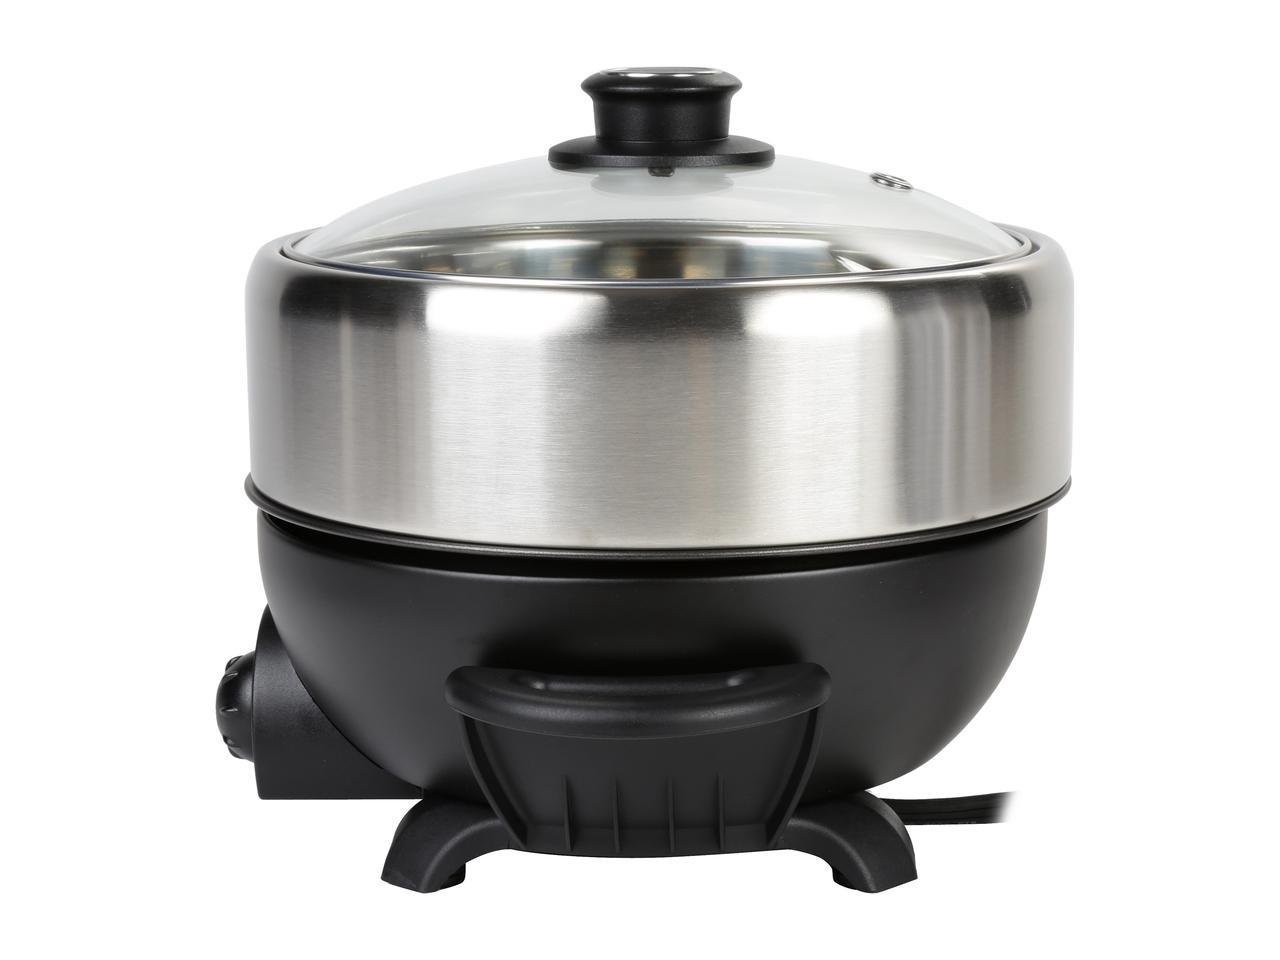 TRMC-40 Shabu and Grill Multi-Cooker, 4 quart, Black by TAYAMA (Image #5)